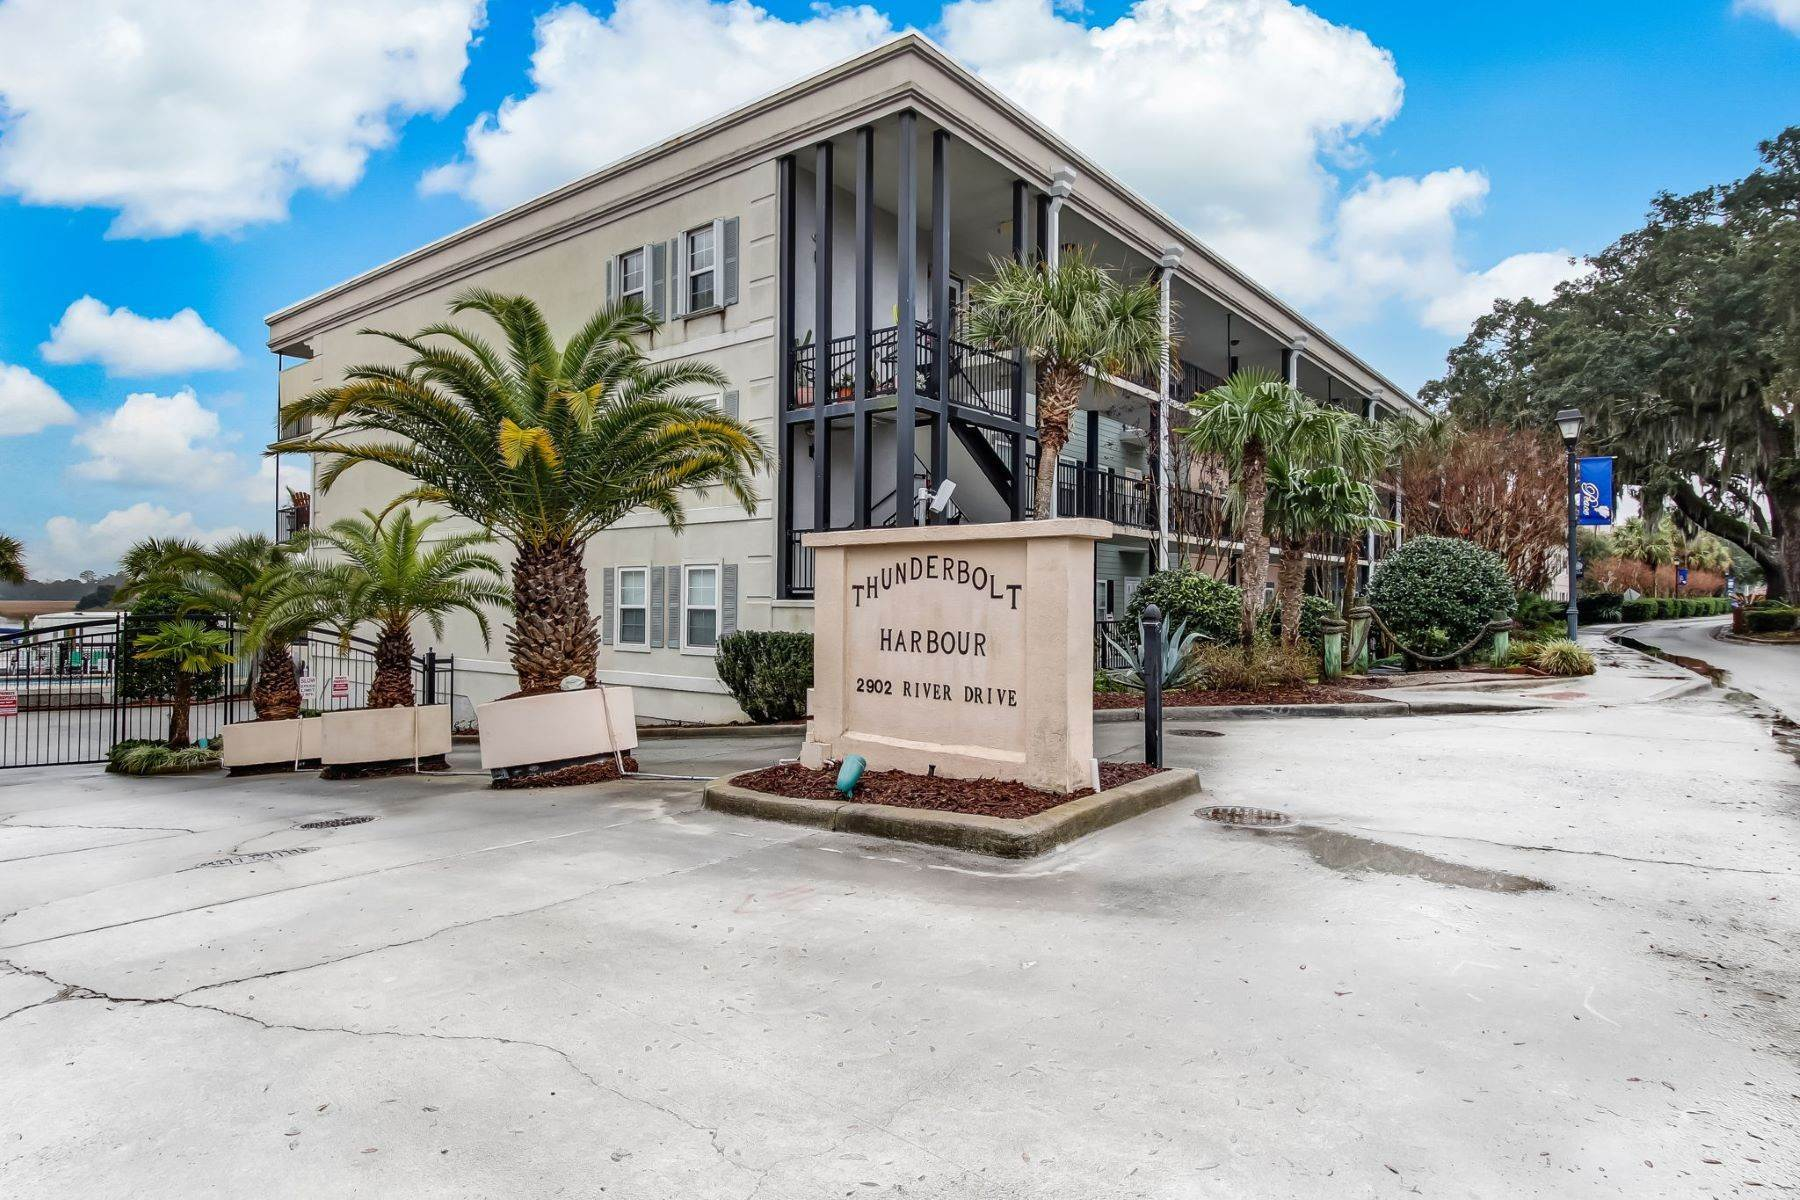 Condominiums for Sale at Luxury Condo in Gated Waterfront Community in Historic Thunderbolt 2902 River Drive, Unit #D-303 Thunderbolt, Georgia 31404 United States